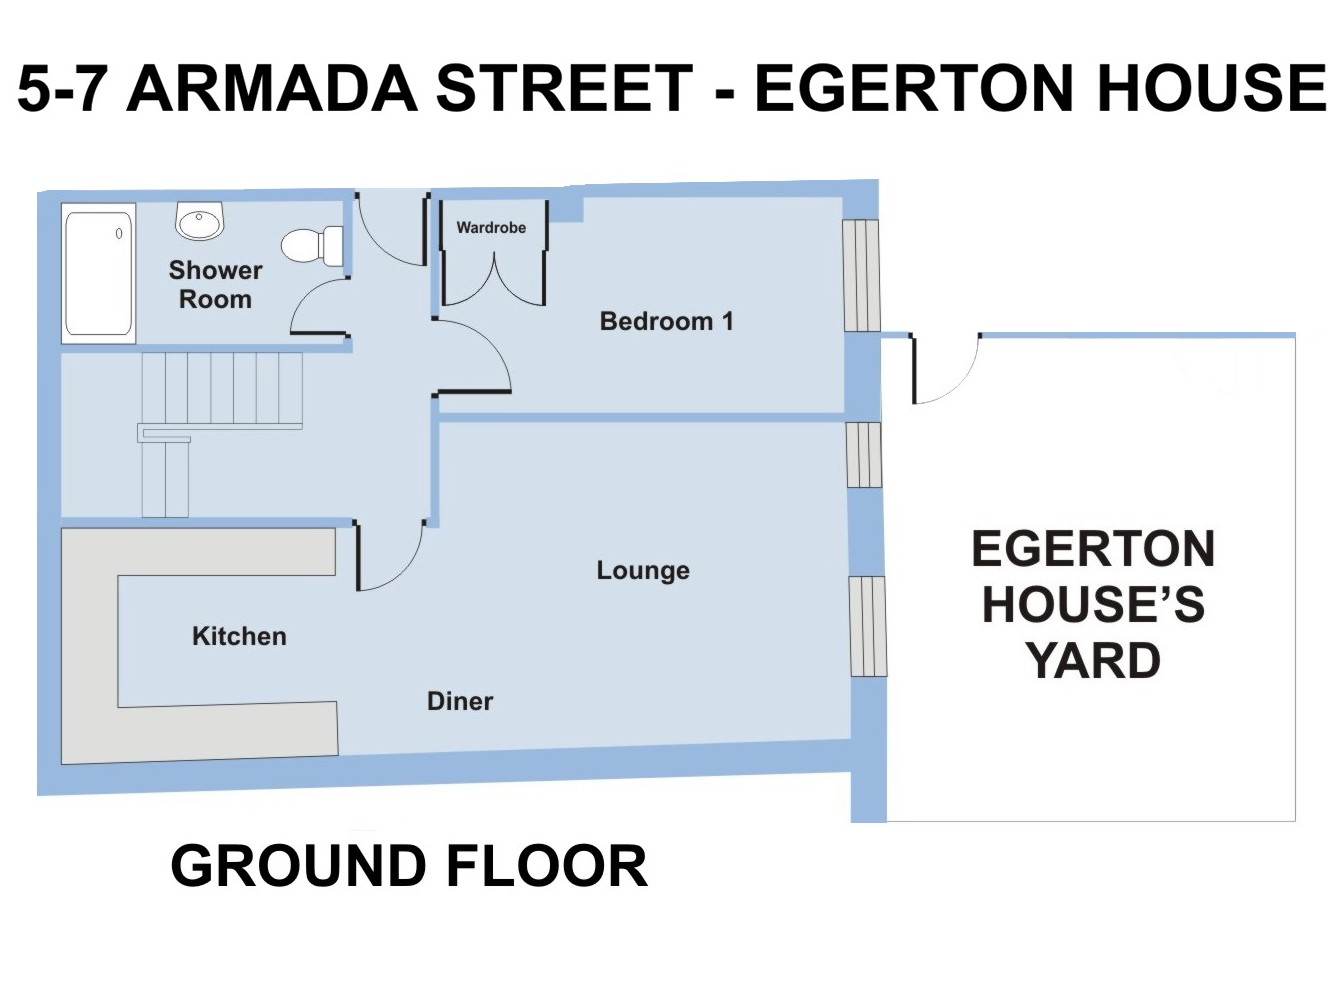 Egerton House, 5-7 Armada Street - 6 bedroom student accommodation Plymouth - Floor plan